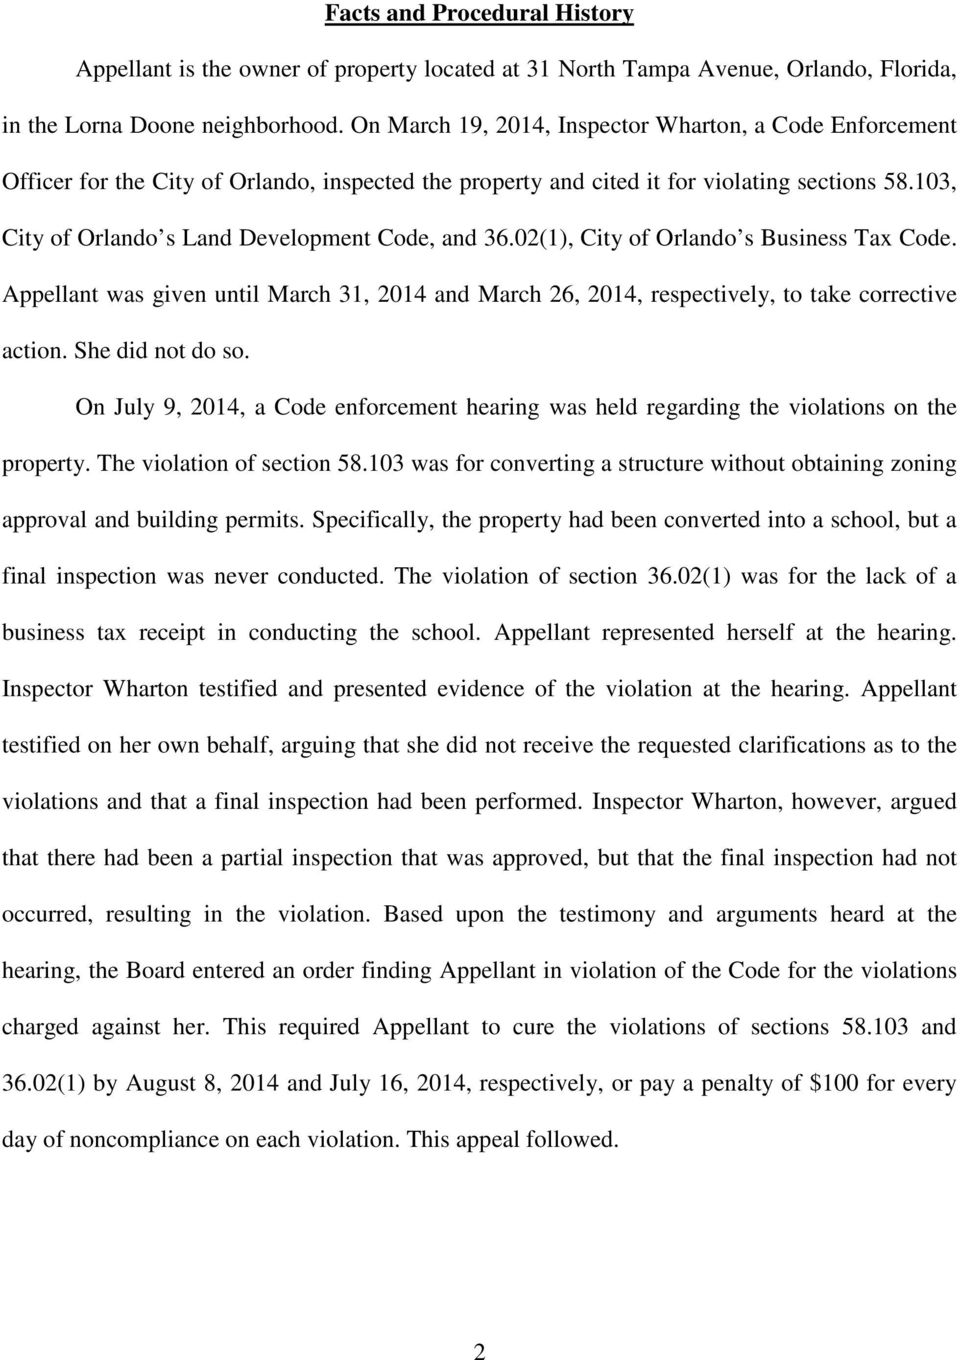 103, City of Orlando s Land Development Code, and 36.02(1), City of Orlando s Business Tax Code. Appellant was given until March 31, 2014 and March 26, 2014, respectively, to take corrective action.